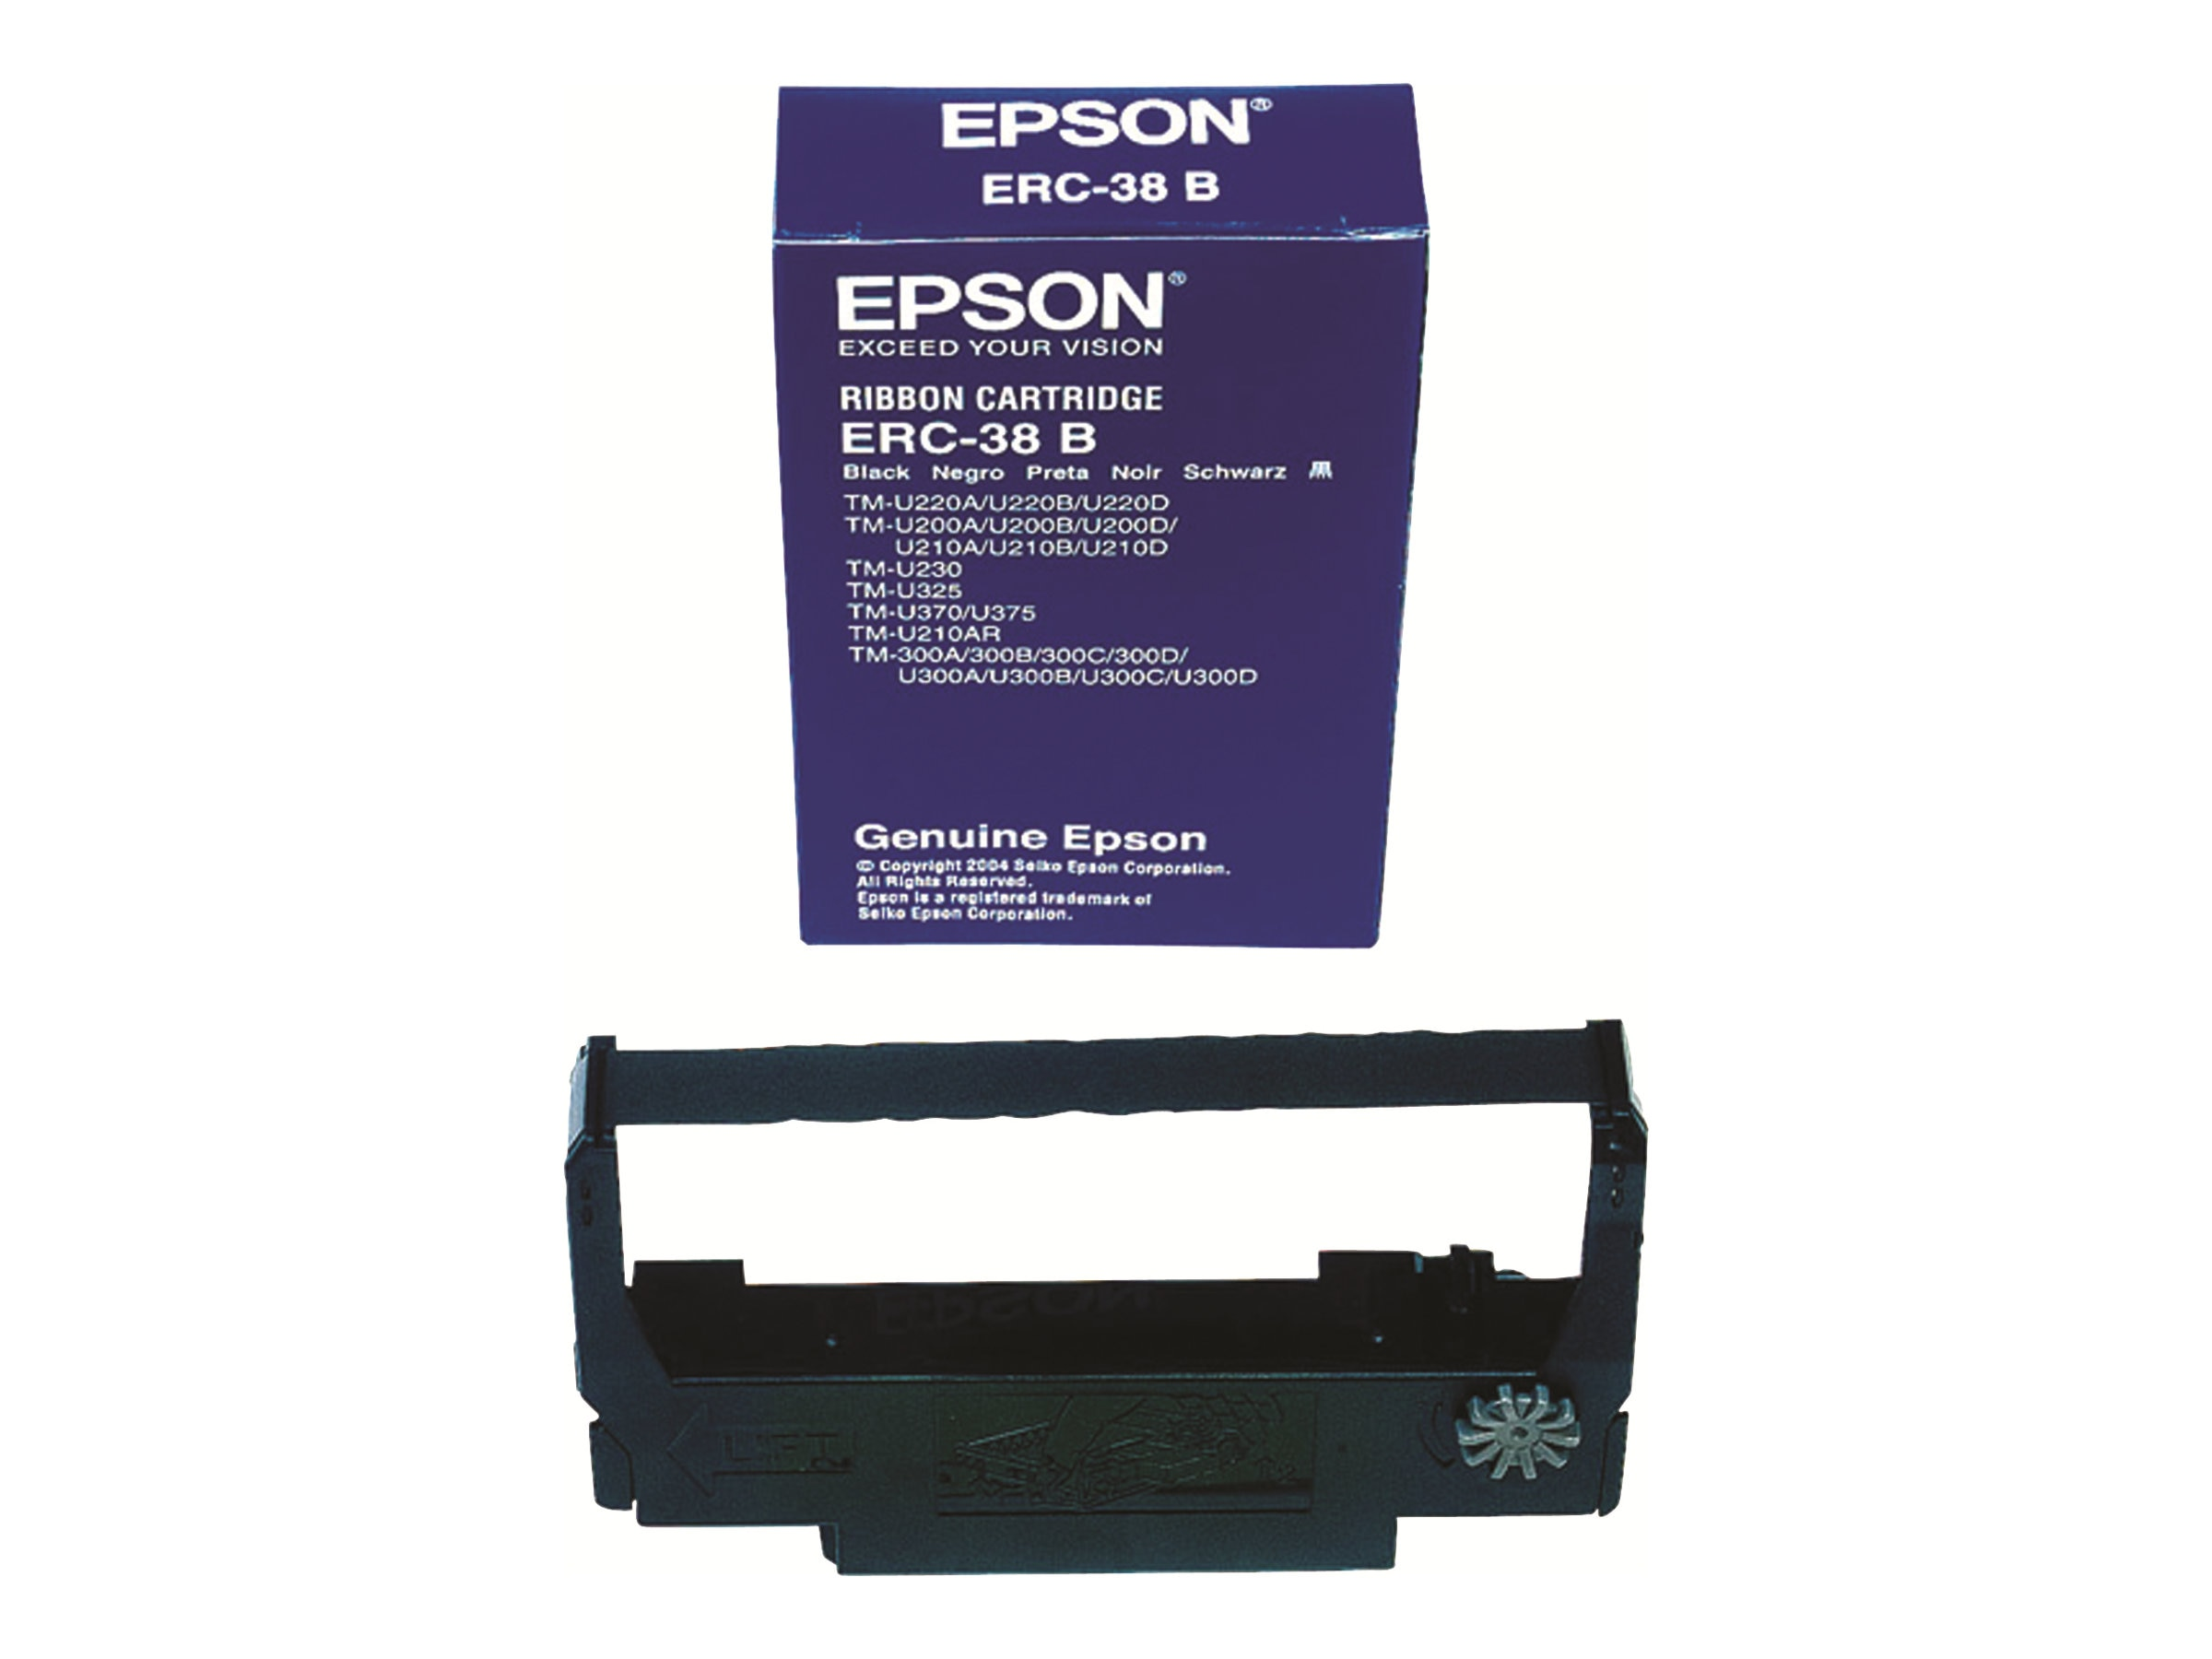 Epson Black Epson ERC-38B Nylon Printer Ribbon for POS Printers (10-pack Case)